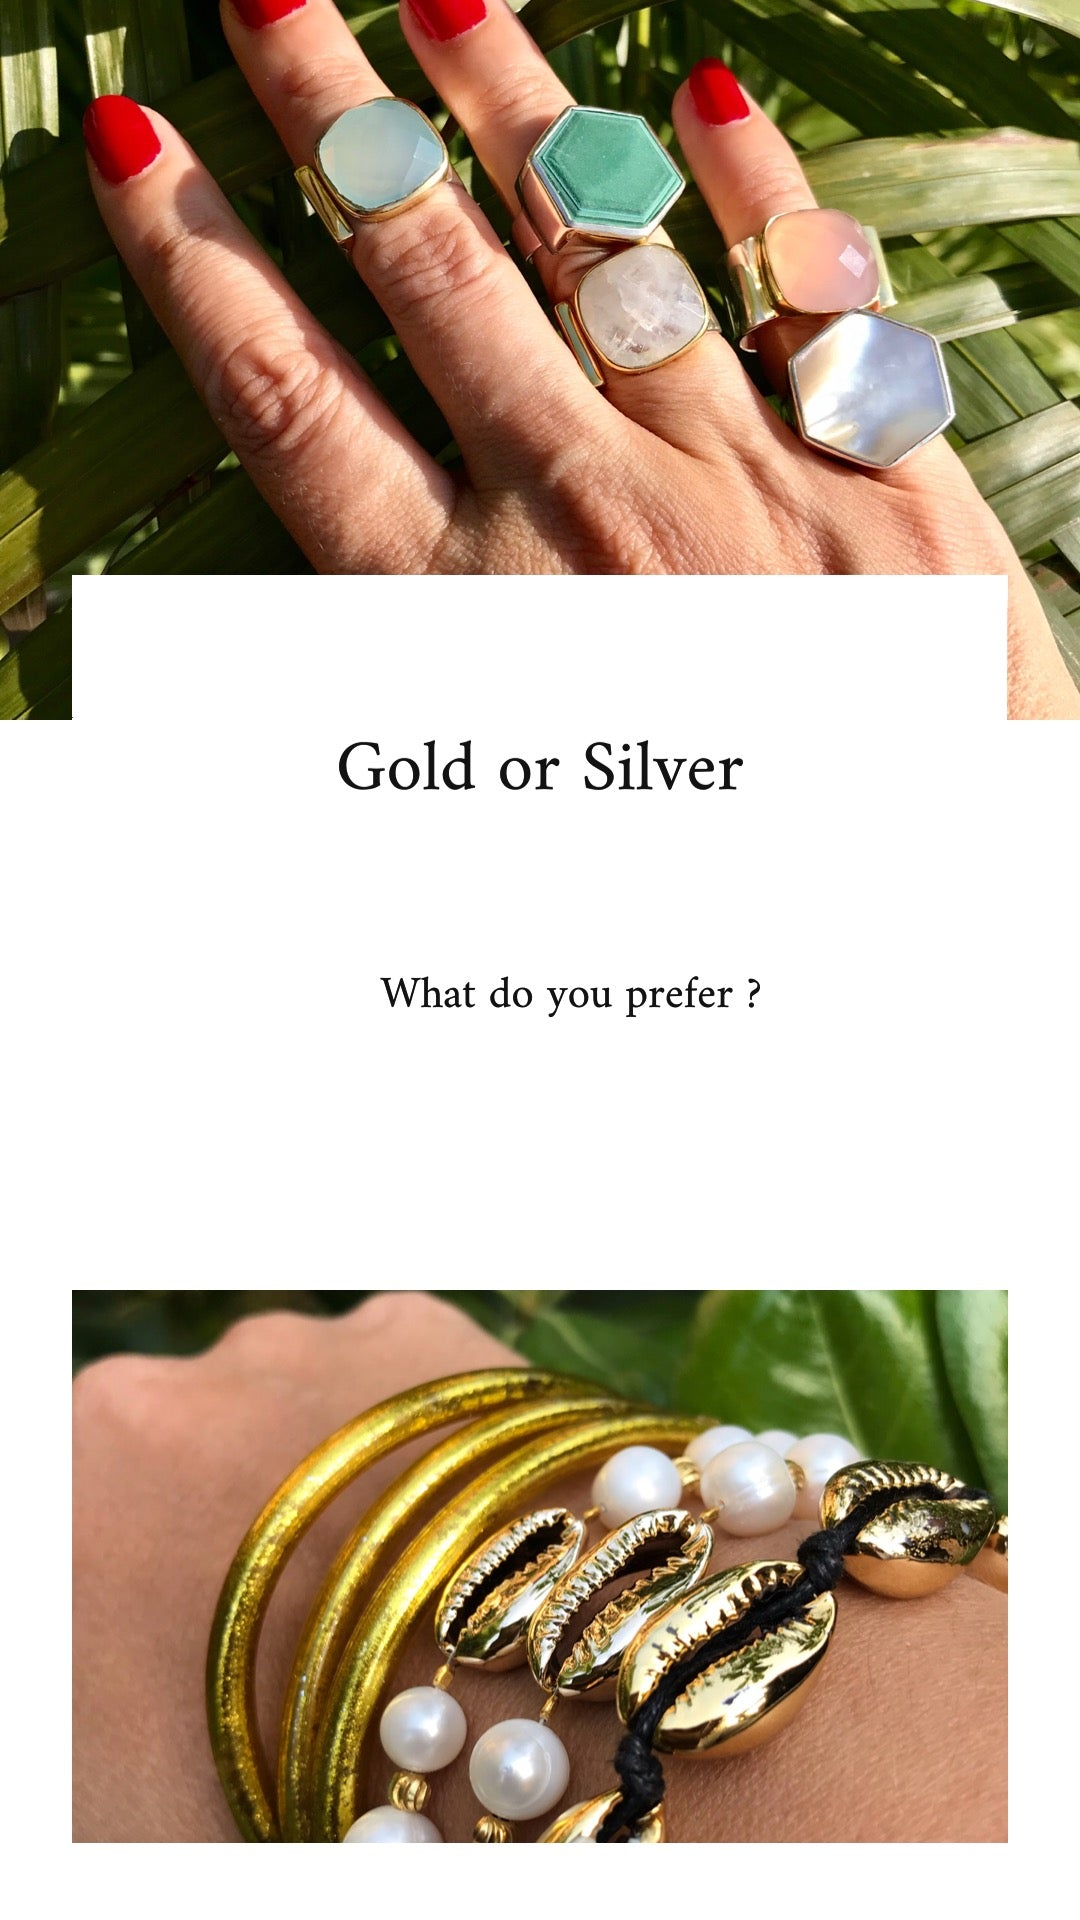 Are you Gold or Silver ?